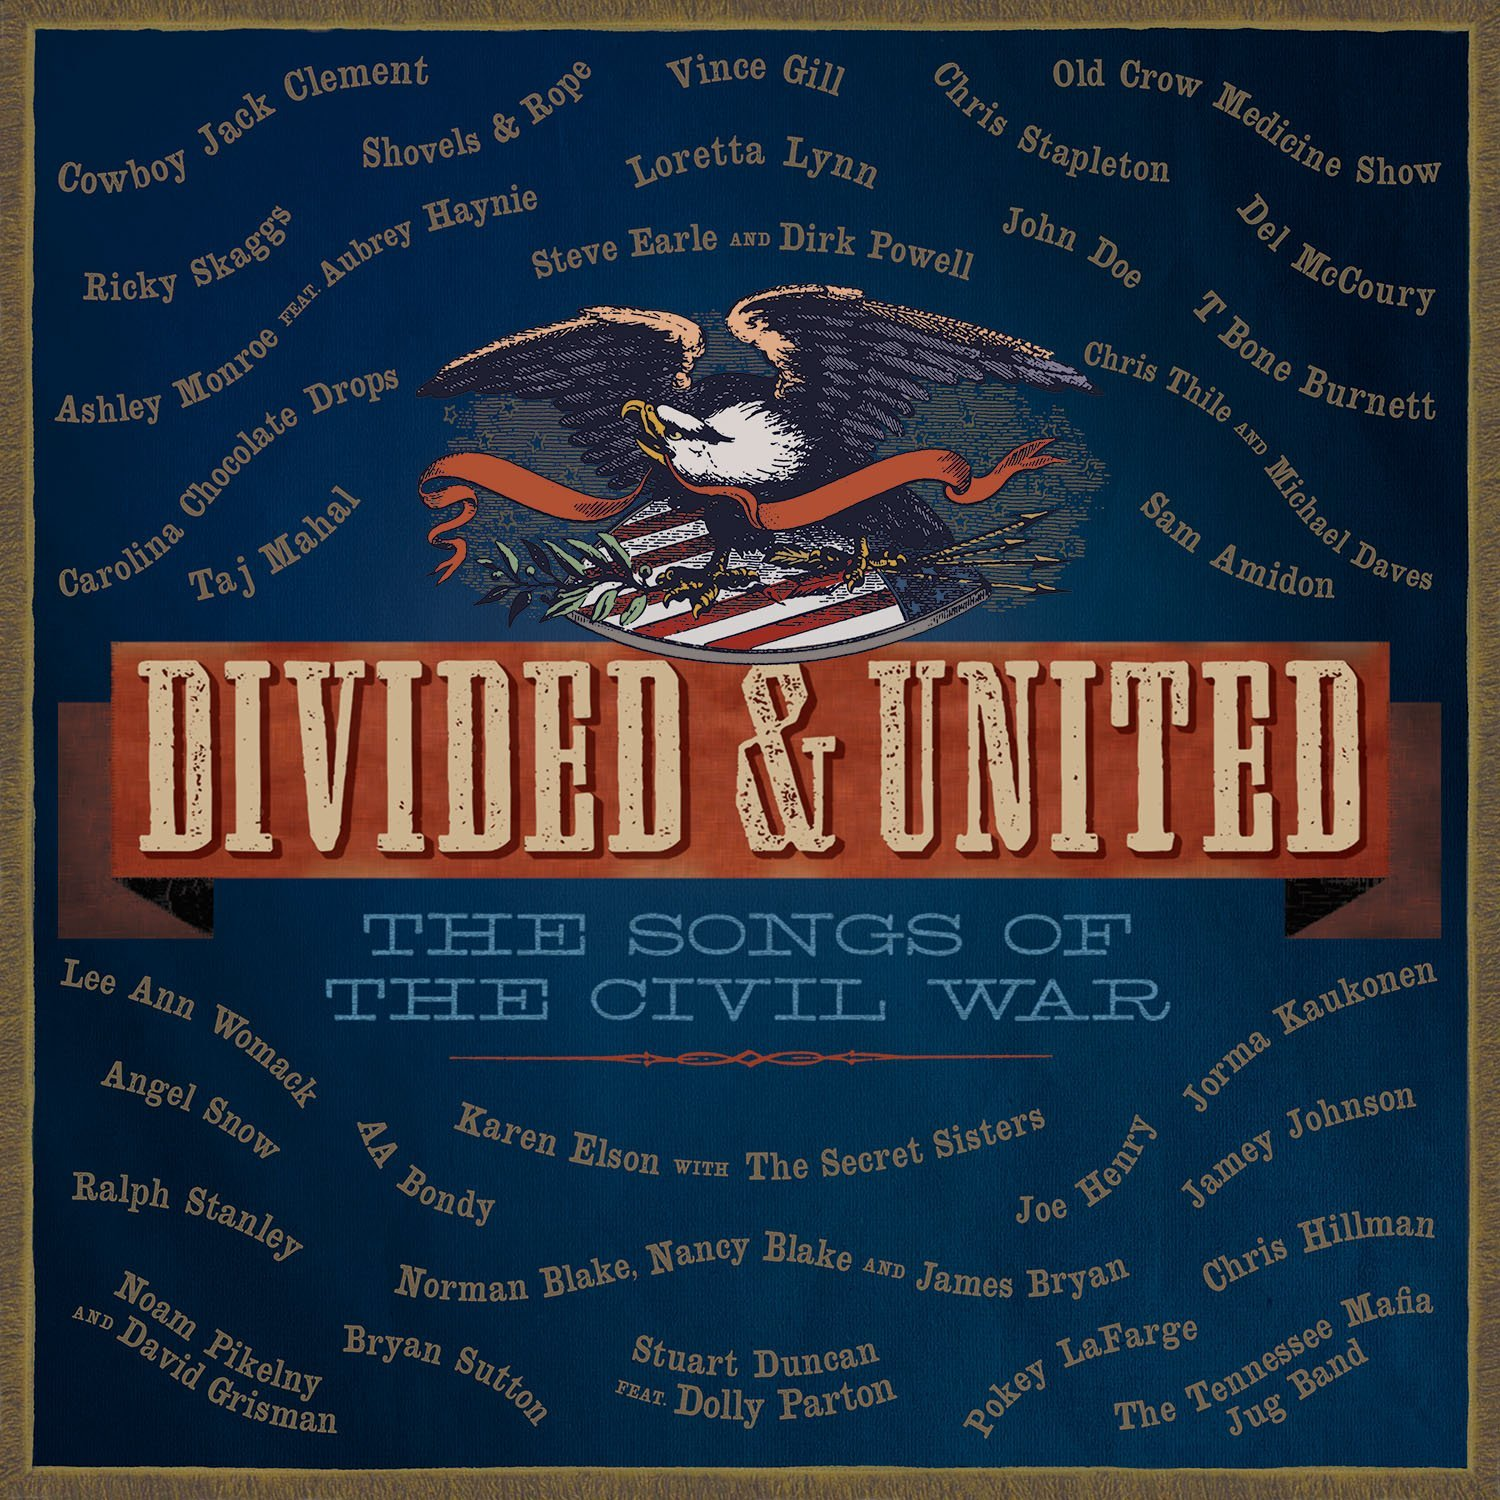 CMT : News : Country, Americana Artists Sing Civil War Songs